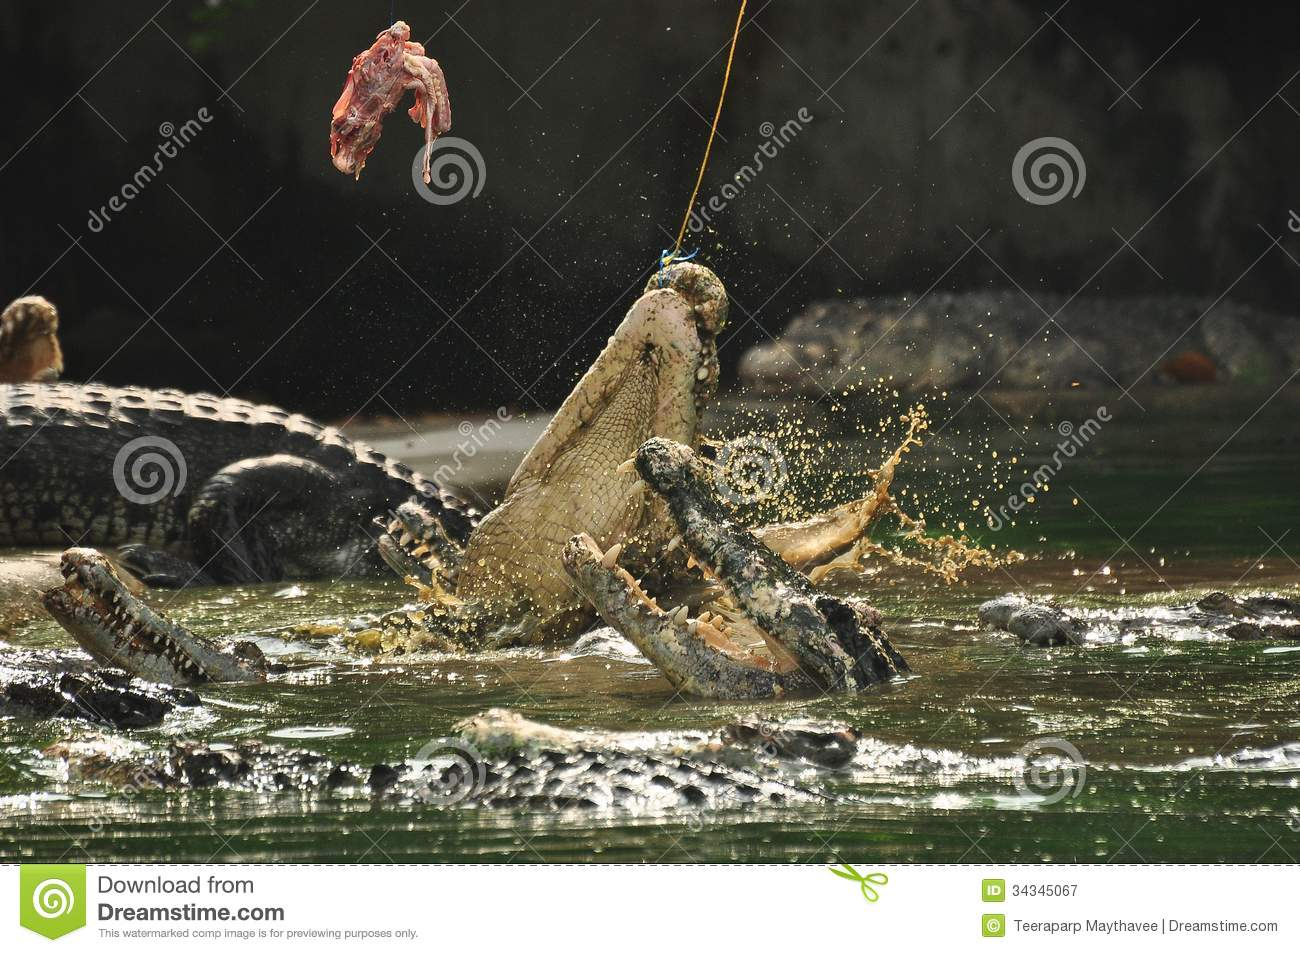 Feeding Crocodile Royalty Free Stock Photography - Image: 34345067